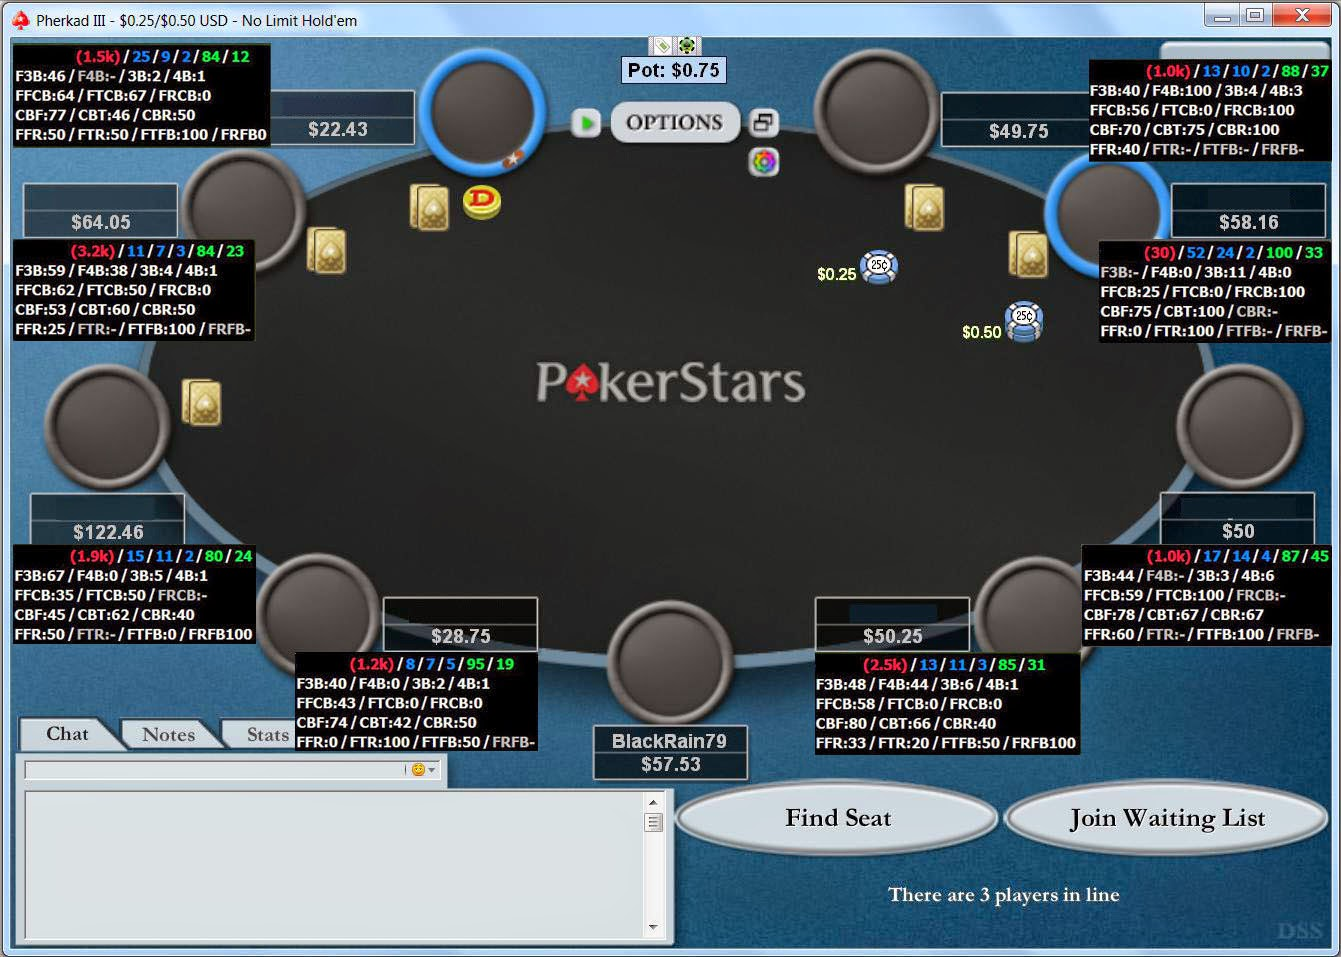 Setting up your poker HUD